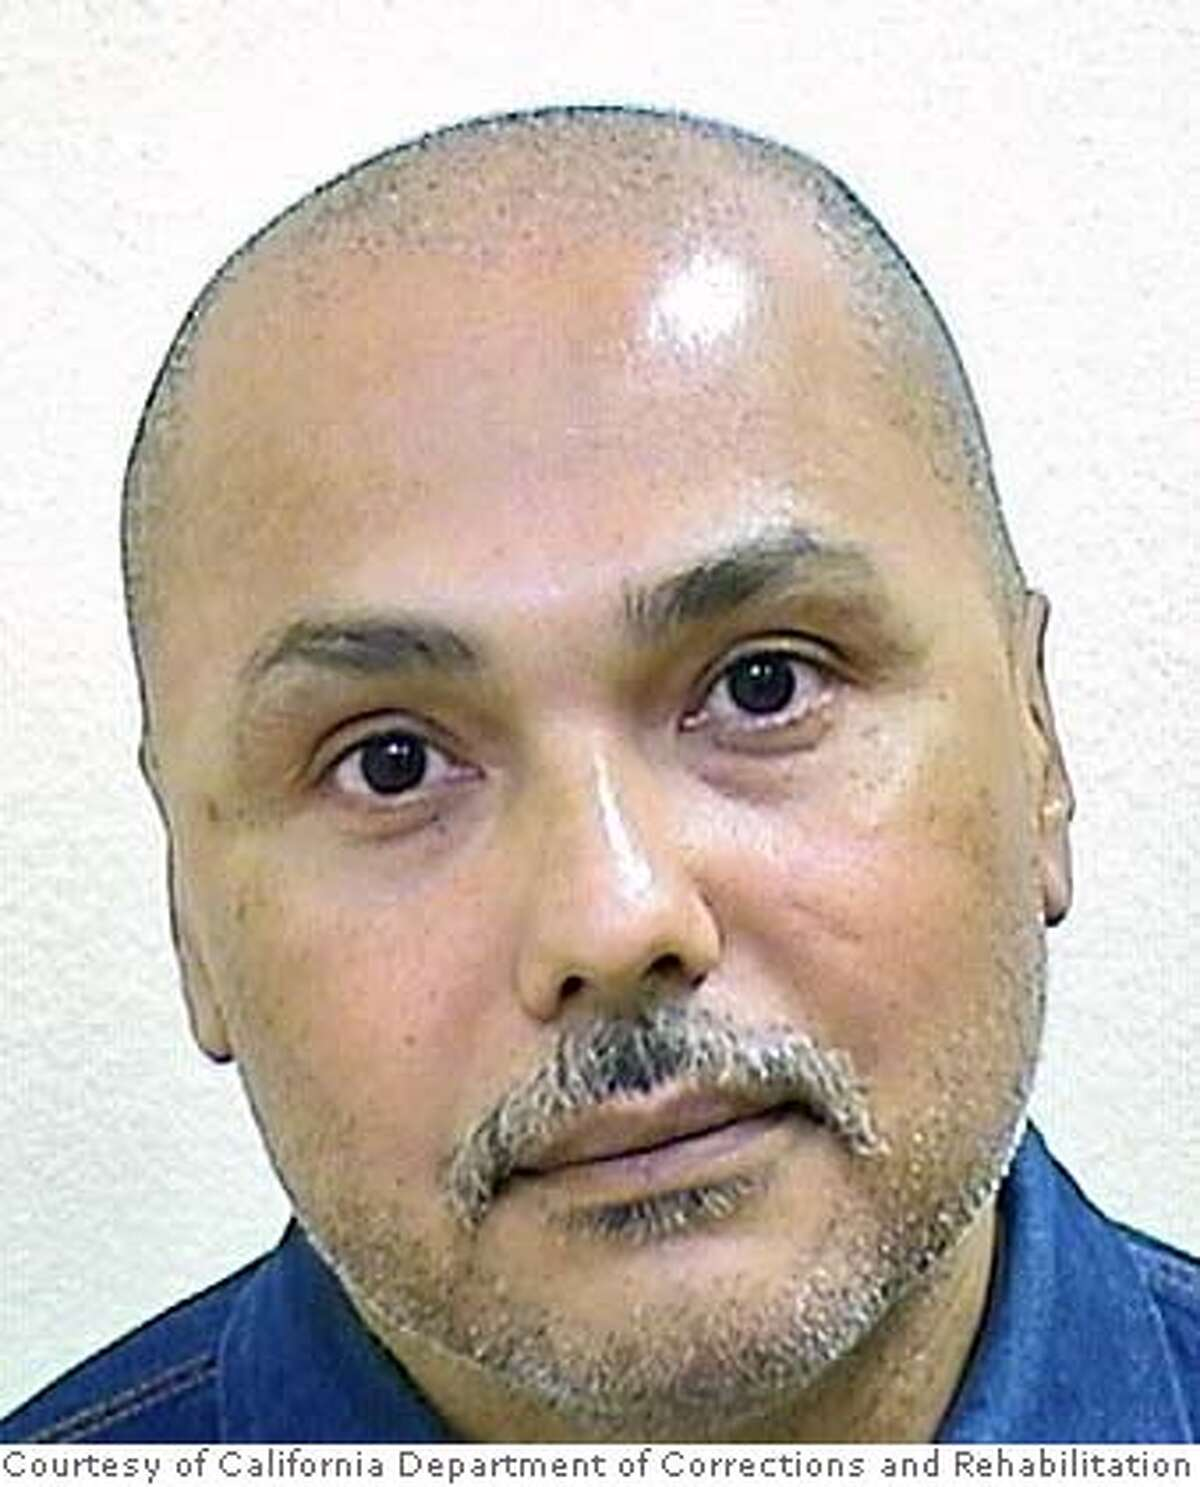 Photo of Michael Morales, to go with today�s Death16 story on judge�s lethal injection ruling. Credit: Courtesy of California Department of Corrections and Rehabilitation